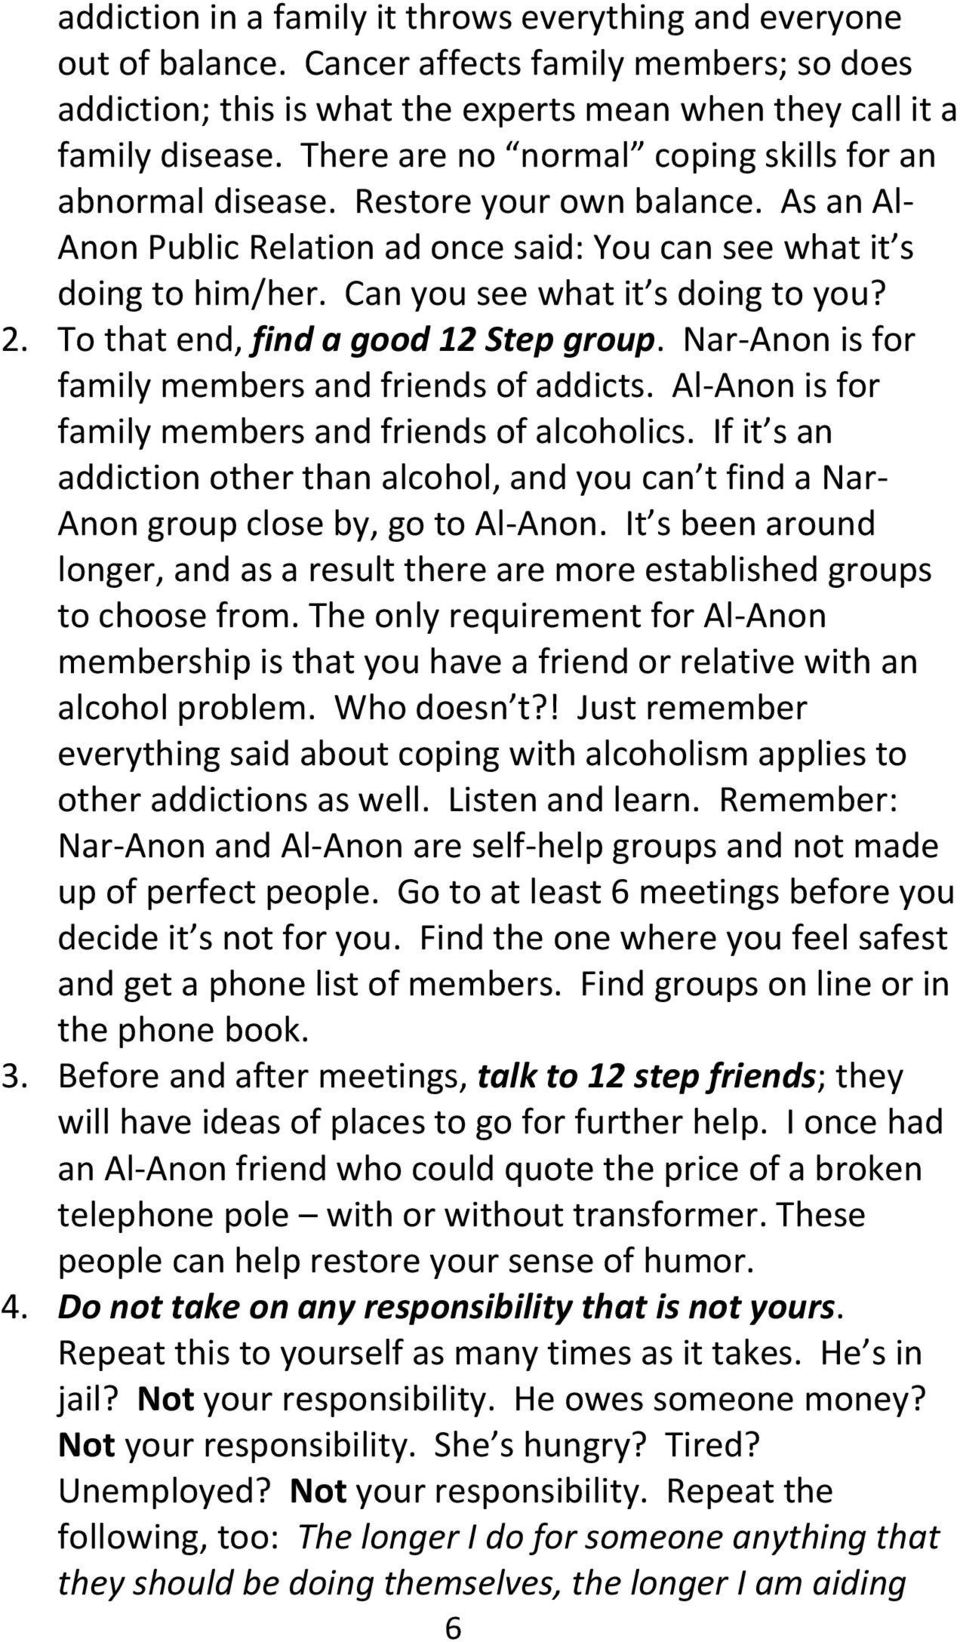 Can you see what it s doing to you? 2. To that end, find a good 12 Step group. Nar-Anon is for family members and friends of addicts. Al-Anon is for family members and friends of alcoholics.